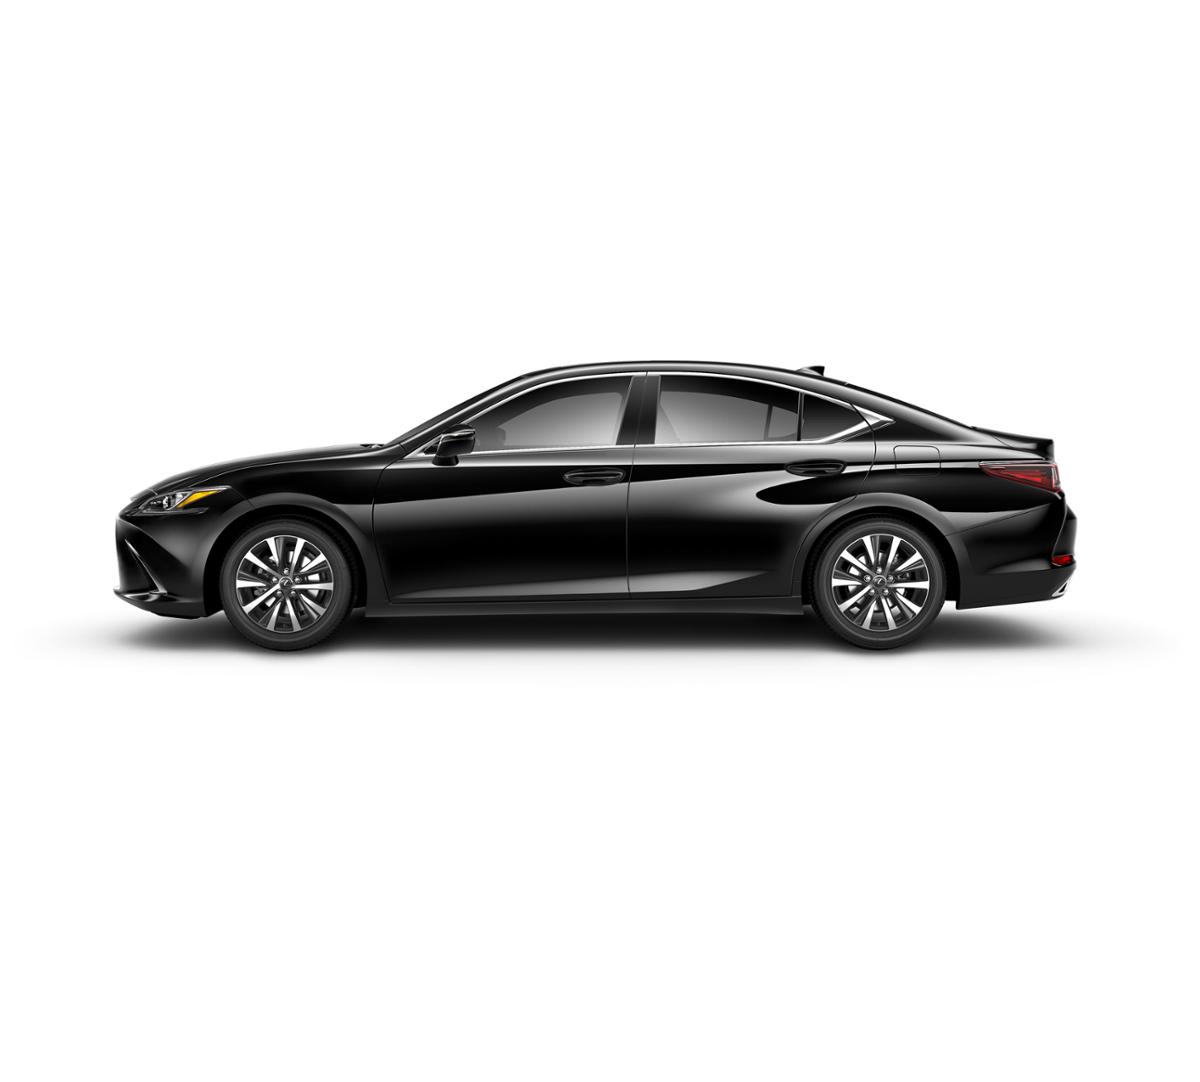 Lexus Es 350 For Sale: 2019 Obsidian Lexus ES 350 For Sale At Ray Catena Lexus Of